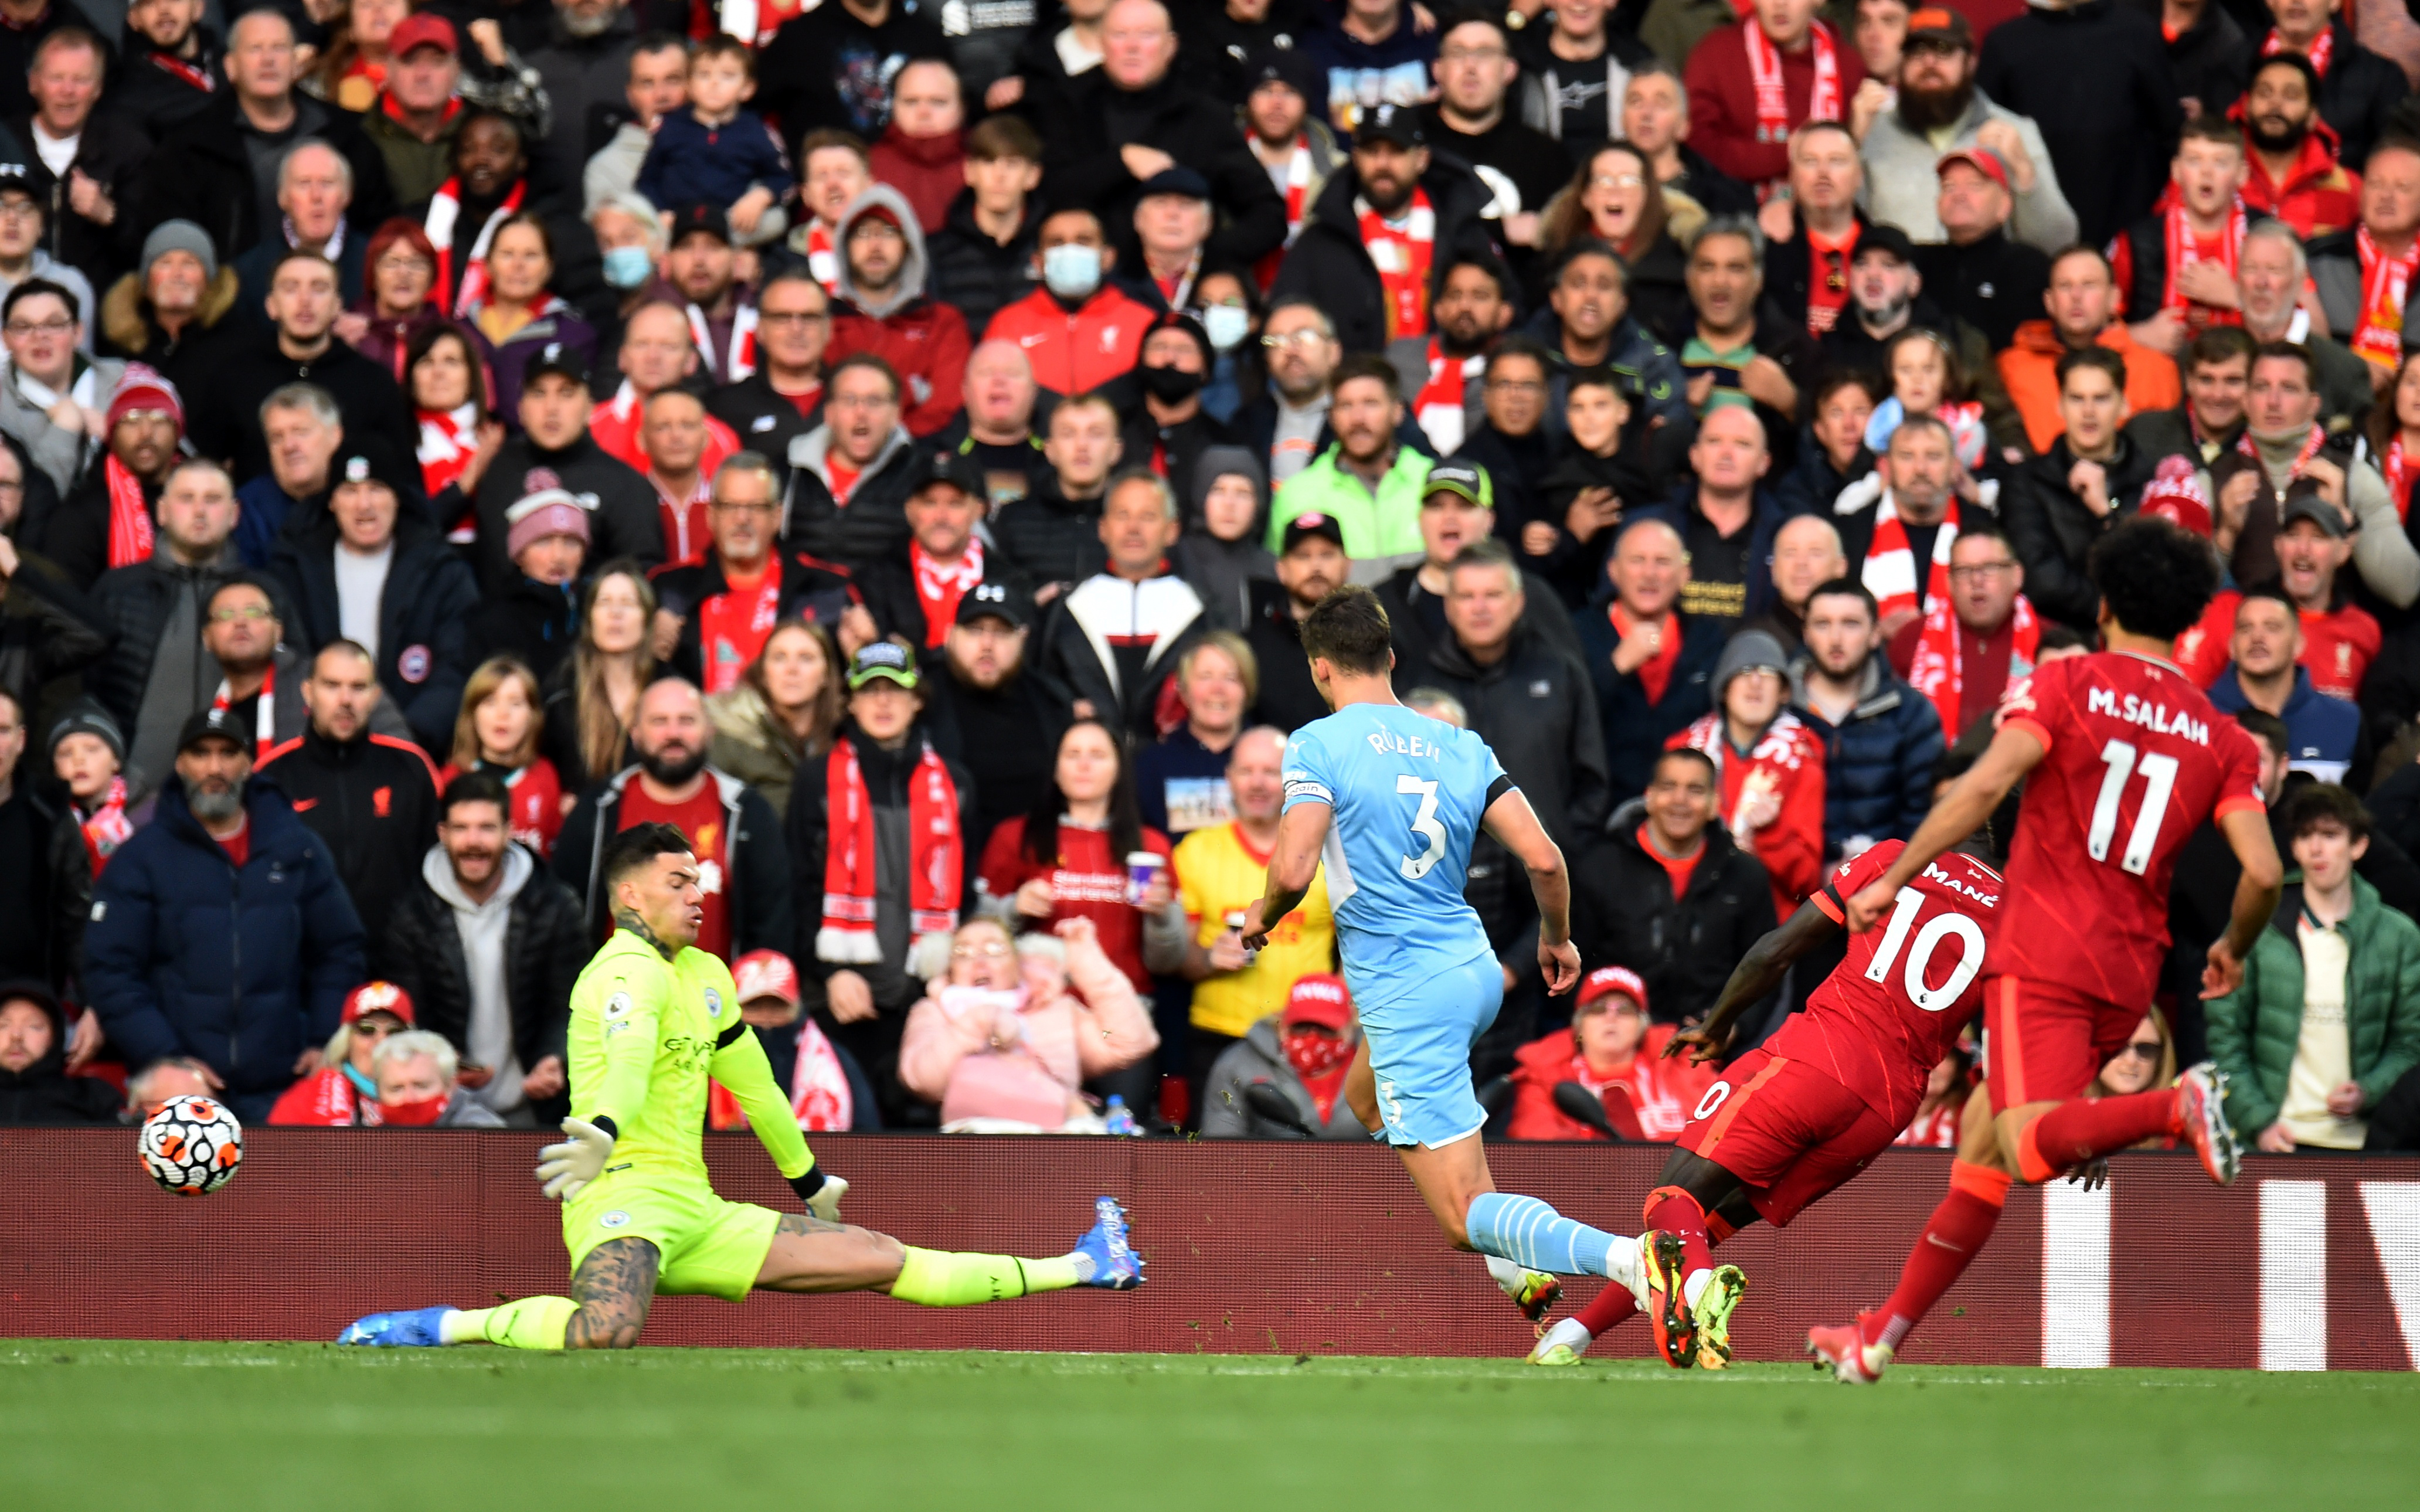 Soccer Football - Premier League - Liverpool v Manchester City - Anfield, Liverpool, Britain - October 3, 2021 Liverpool's Sadio Mane scores their first goal REUTERS/Peter Powell